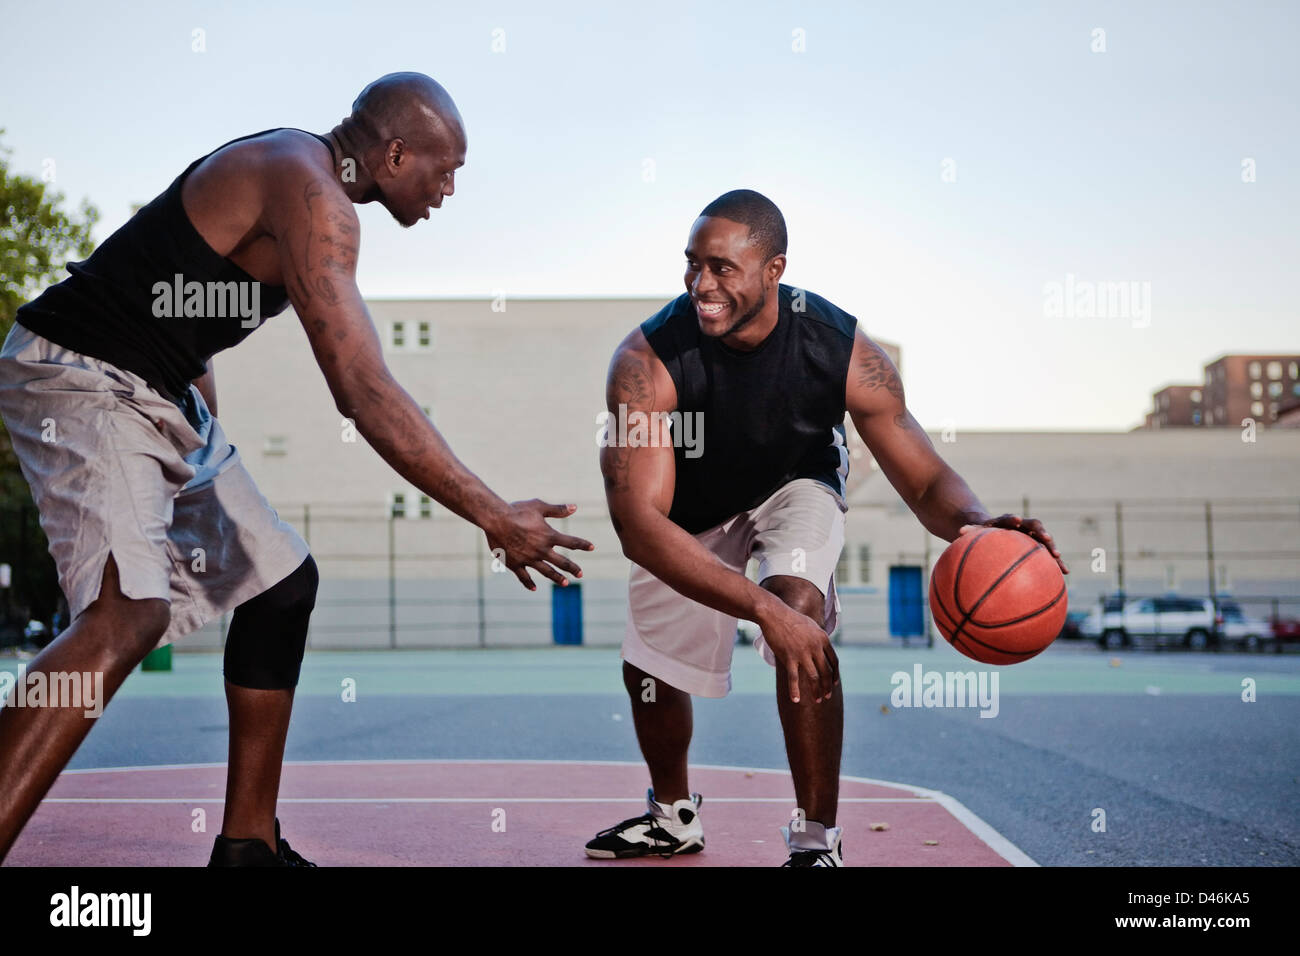 two young black men playing basketball after work stock photo